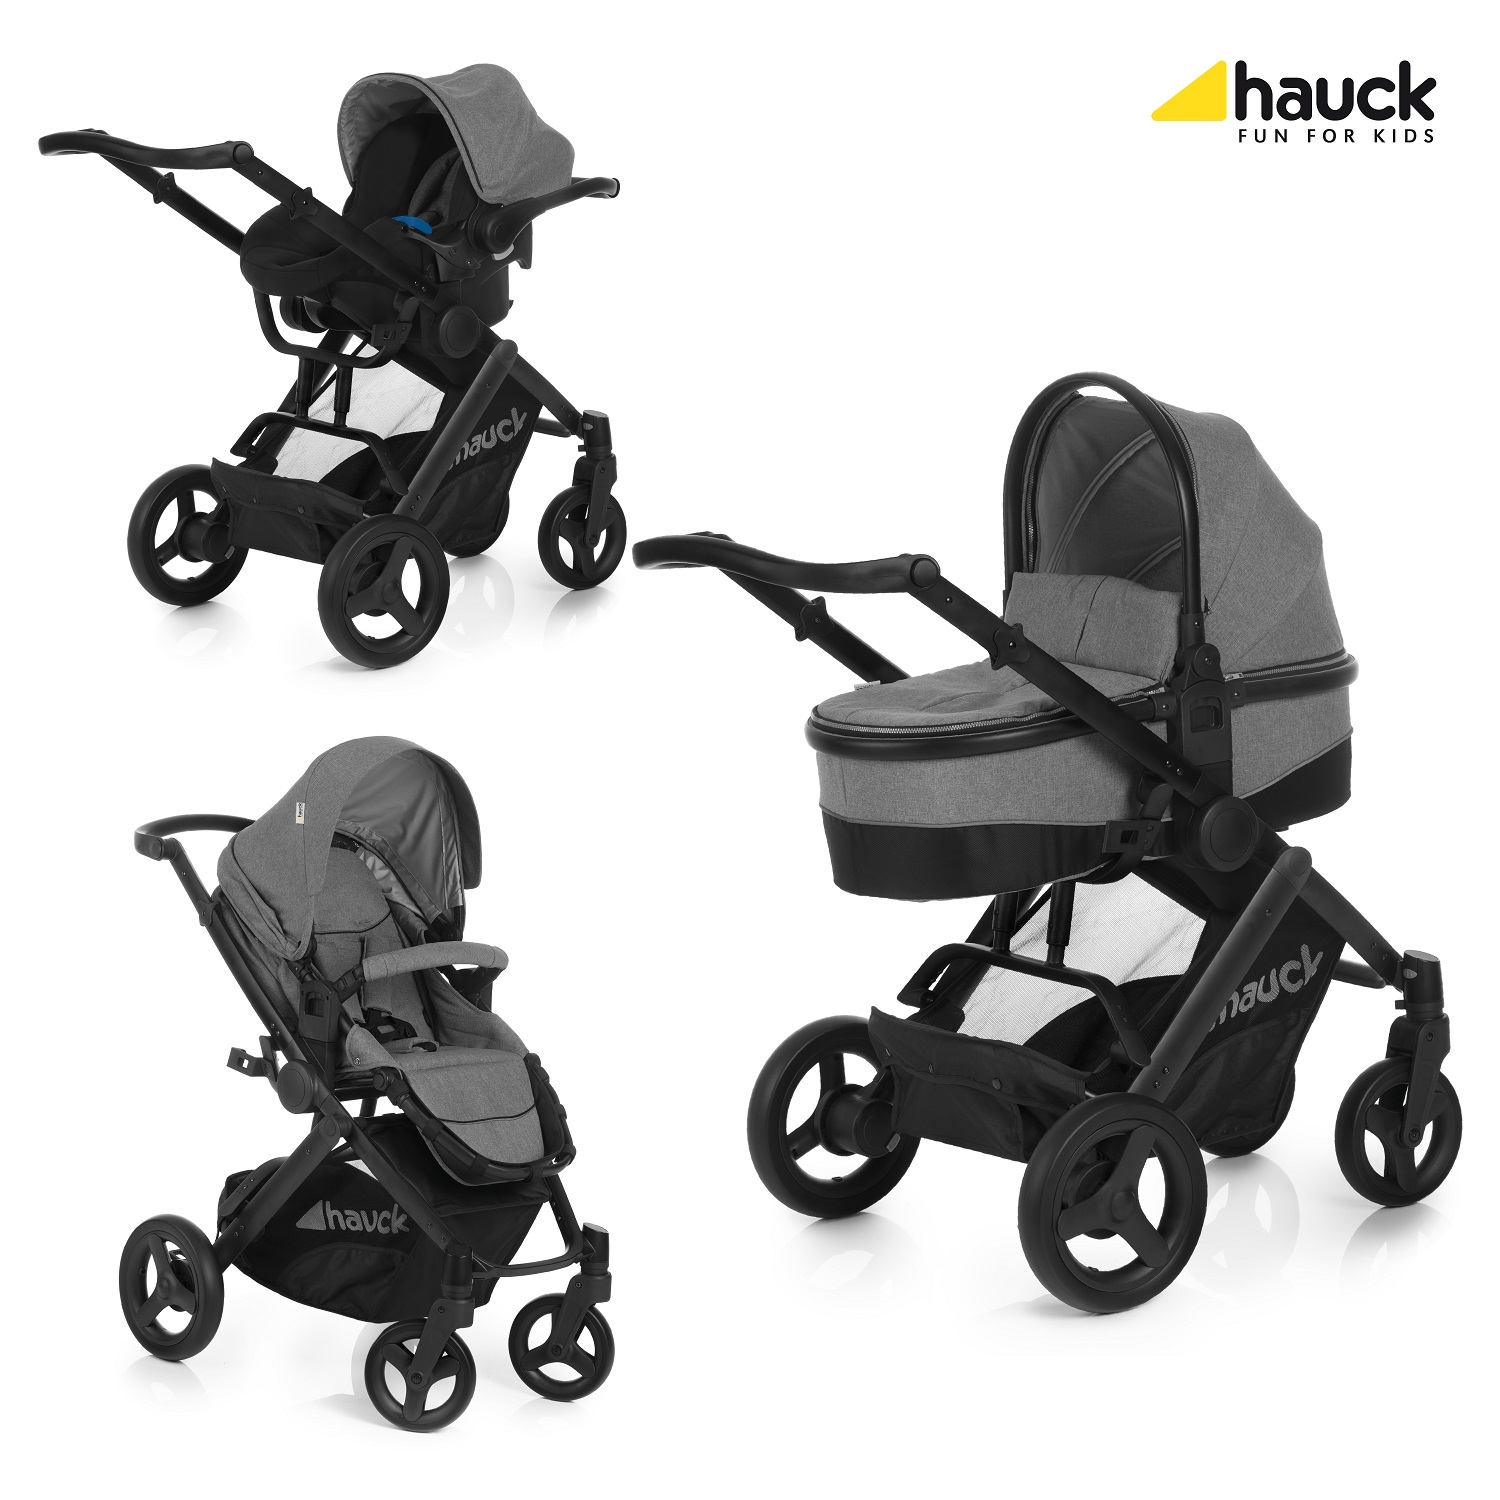 hauck maxan 4 stroller trio set 2017 melange grey buy at. Black Bedroom Furniture Sets. Home Design Ideas